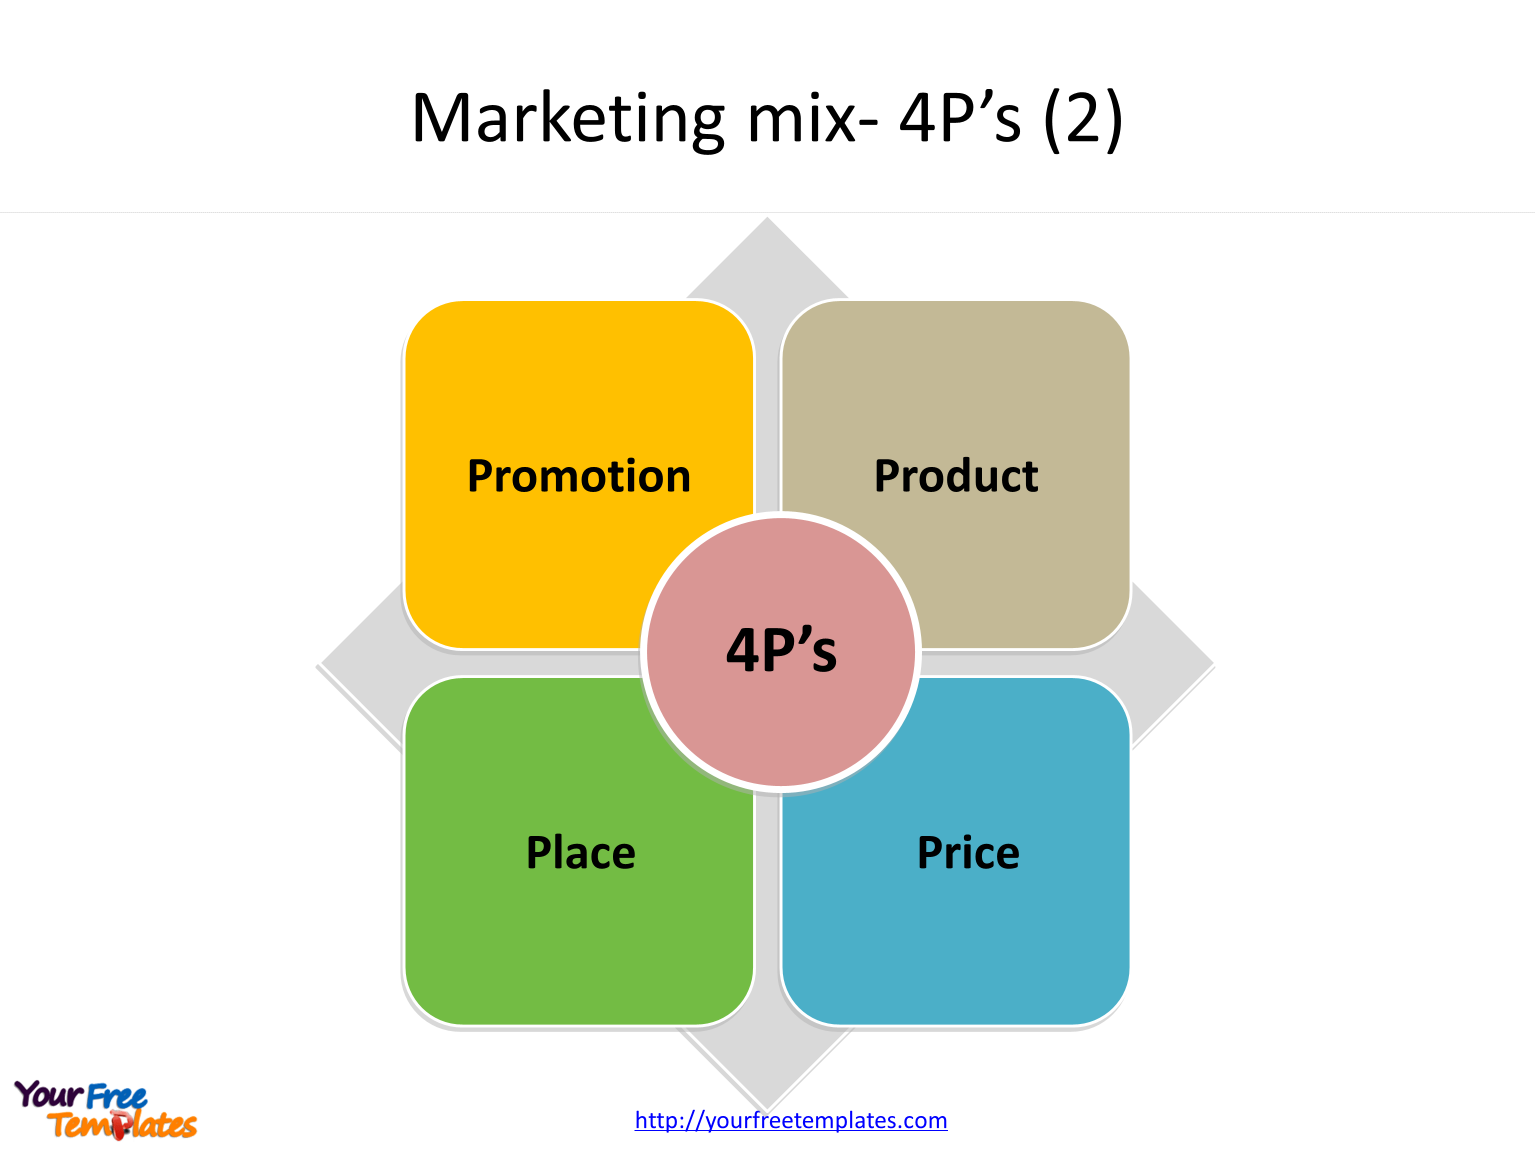 Marketing mix of 4P's, product, price, promotion, and place.